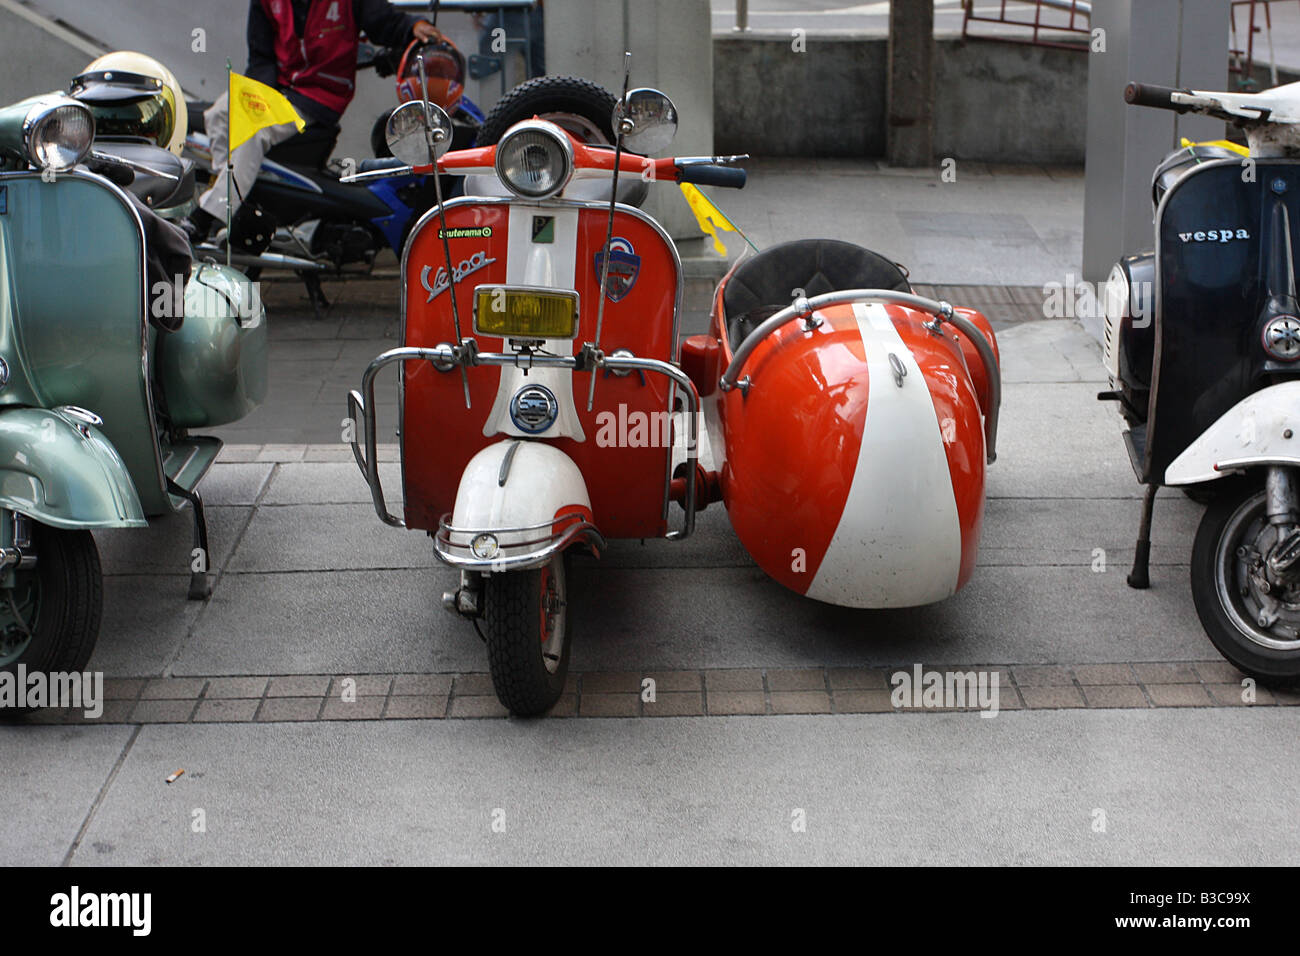 vespa roller und seitenwagen stockfoto bild 19325094 alamy. Black Bedroom Furniture Sets. Home Design Ideas